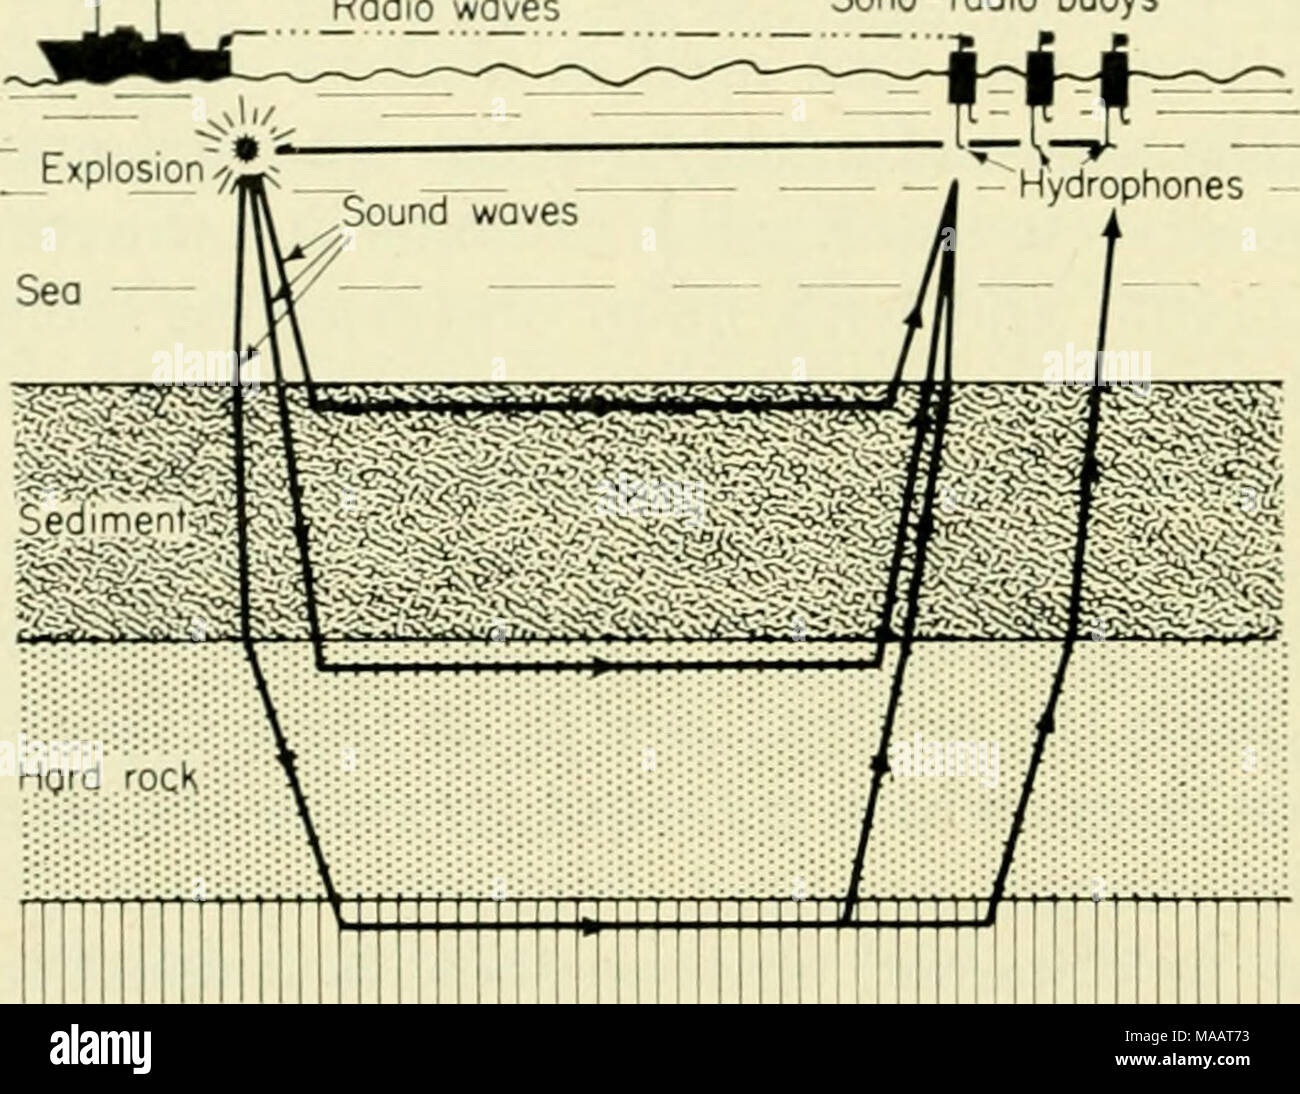 . The Earth beneath the sea : History . Bosement rock Fig. 1. The sono-radio buoy system of seismic refraction .shooting. Explosions are fired from the ship and the signals received by hydrophones below the buoy are trans- mitted back to the ship for recording. The disadvantages of the limited radio range of the sono-radio buoys could be overcome by increasing the radio power transmitted, but the increase required, say, to double the range to 00 km would be of the order of twenty times. This results in a cumbersome buoy. During early 1962, however, an alternative system for long-range seismic  - Stock Image